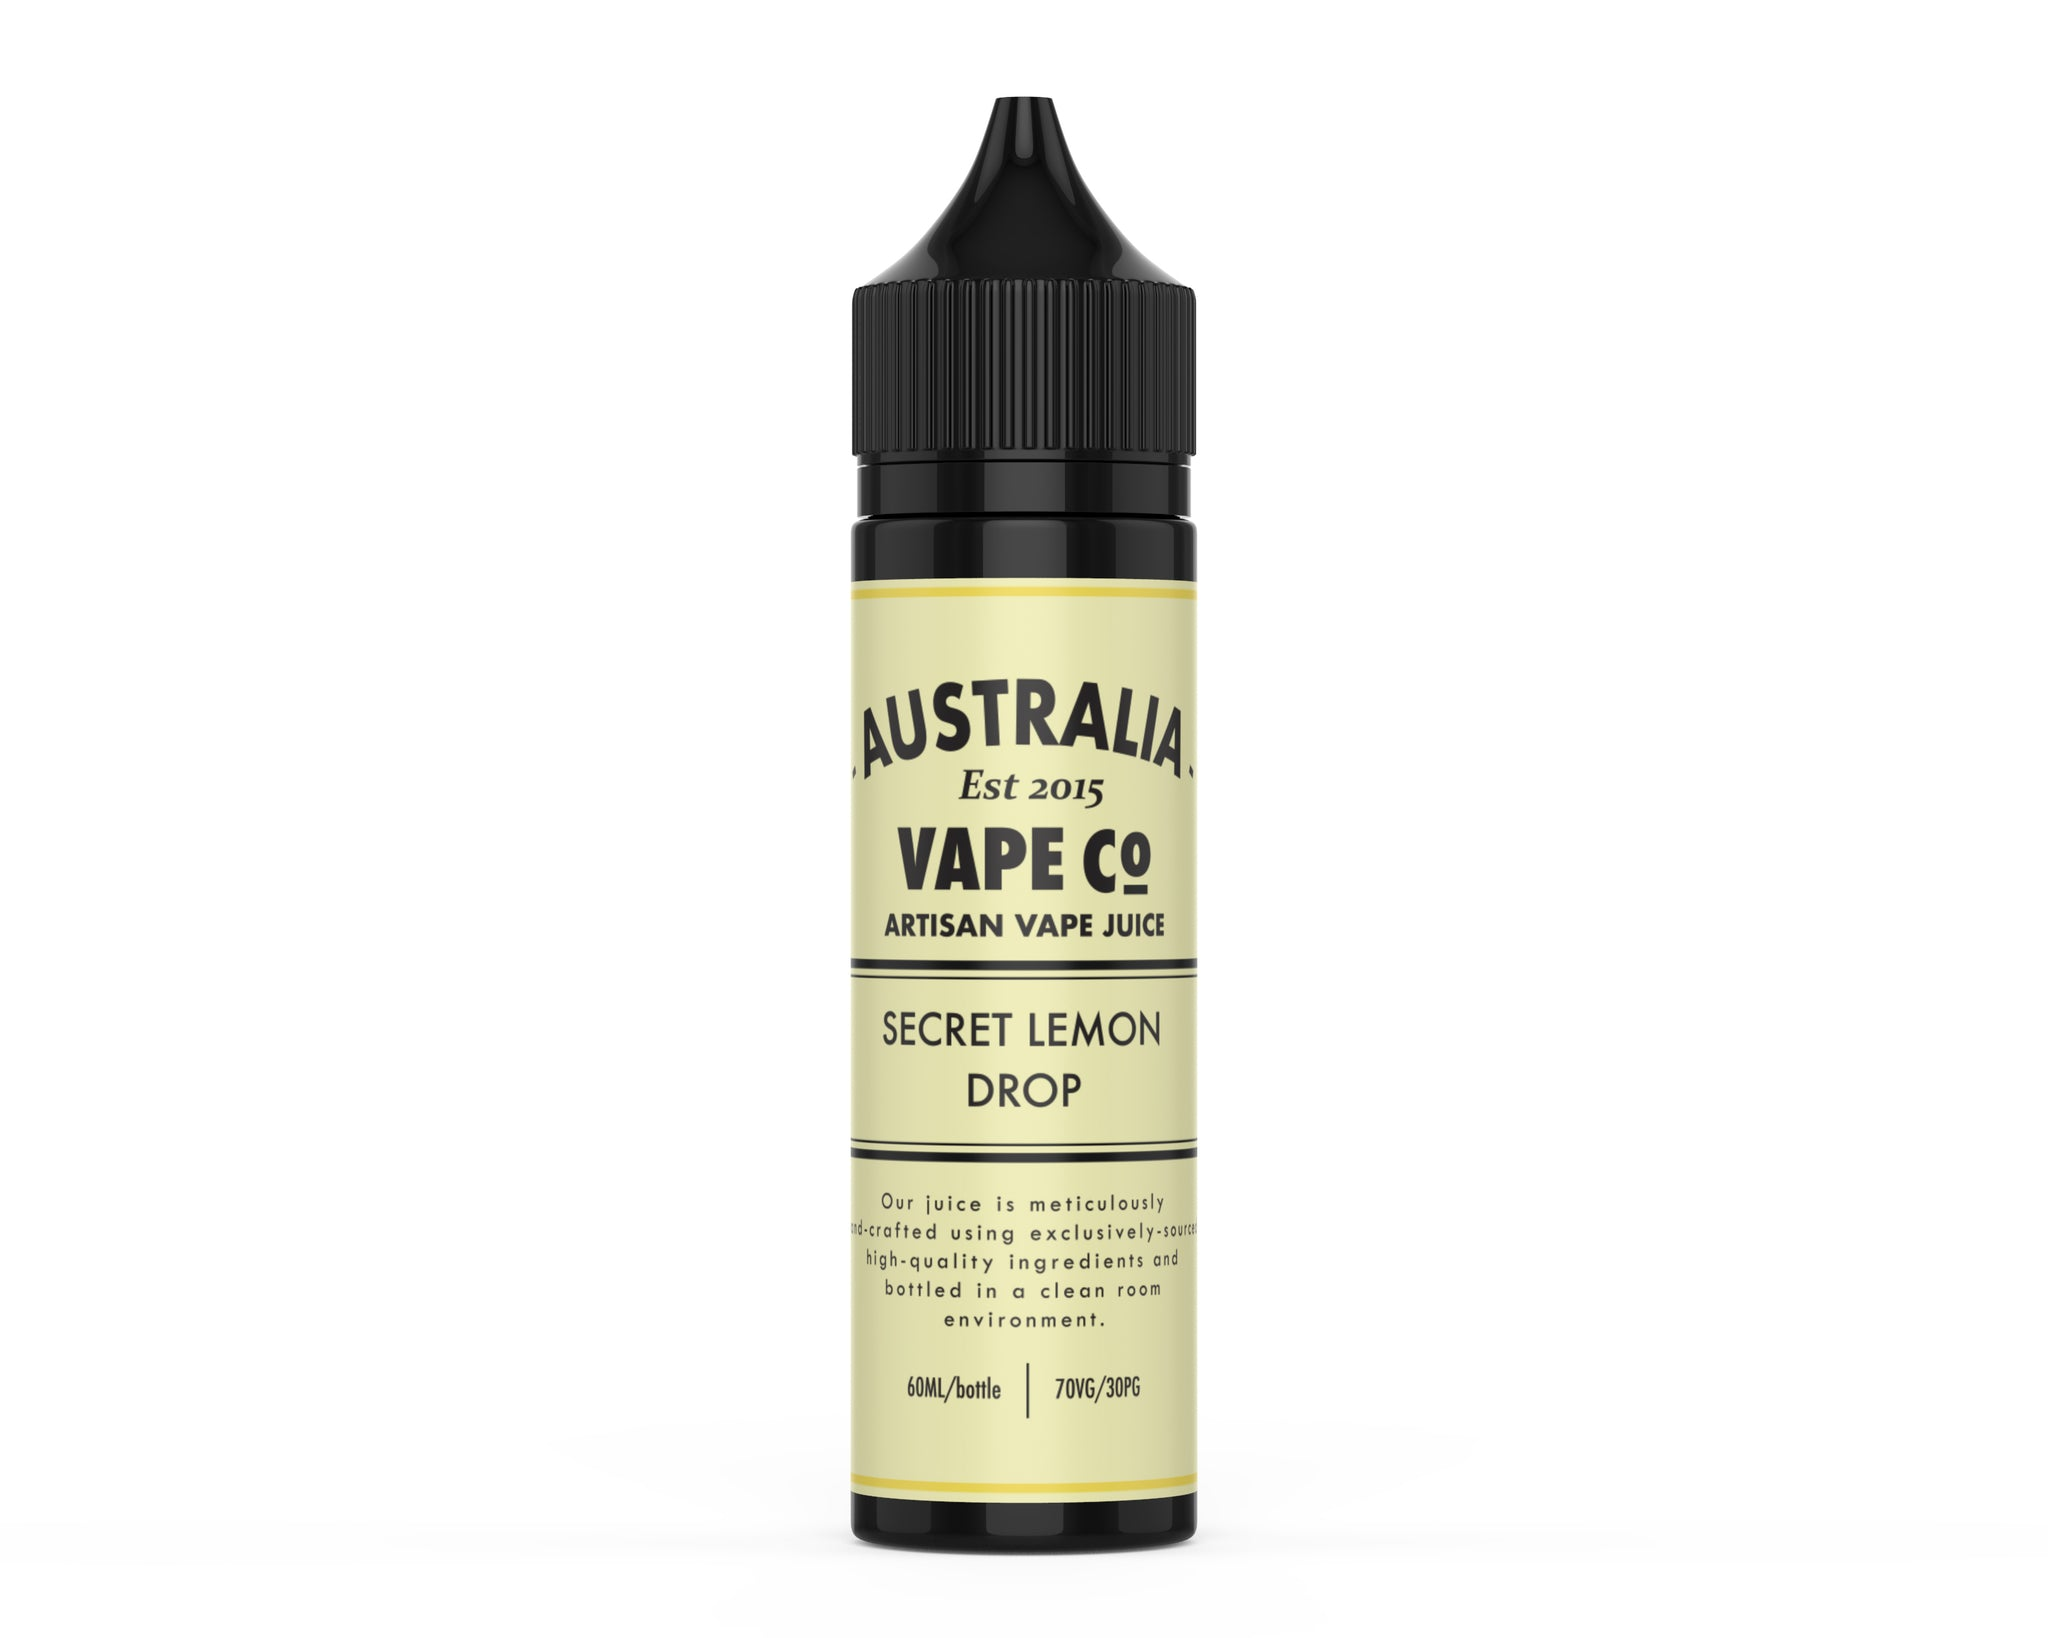 AUSTRALIA VAPE CO - Secret Lemon Drop - Australia Vape Company